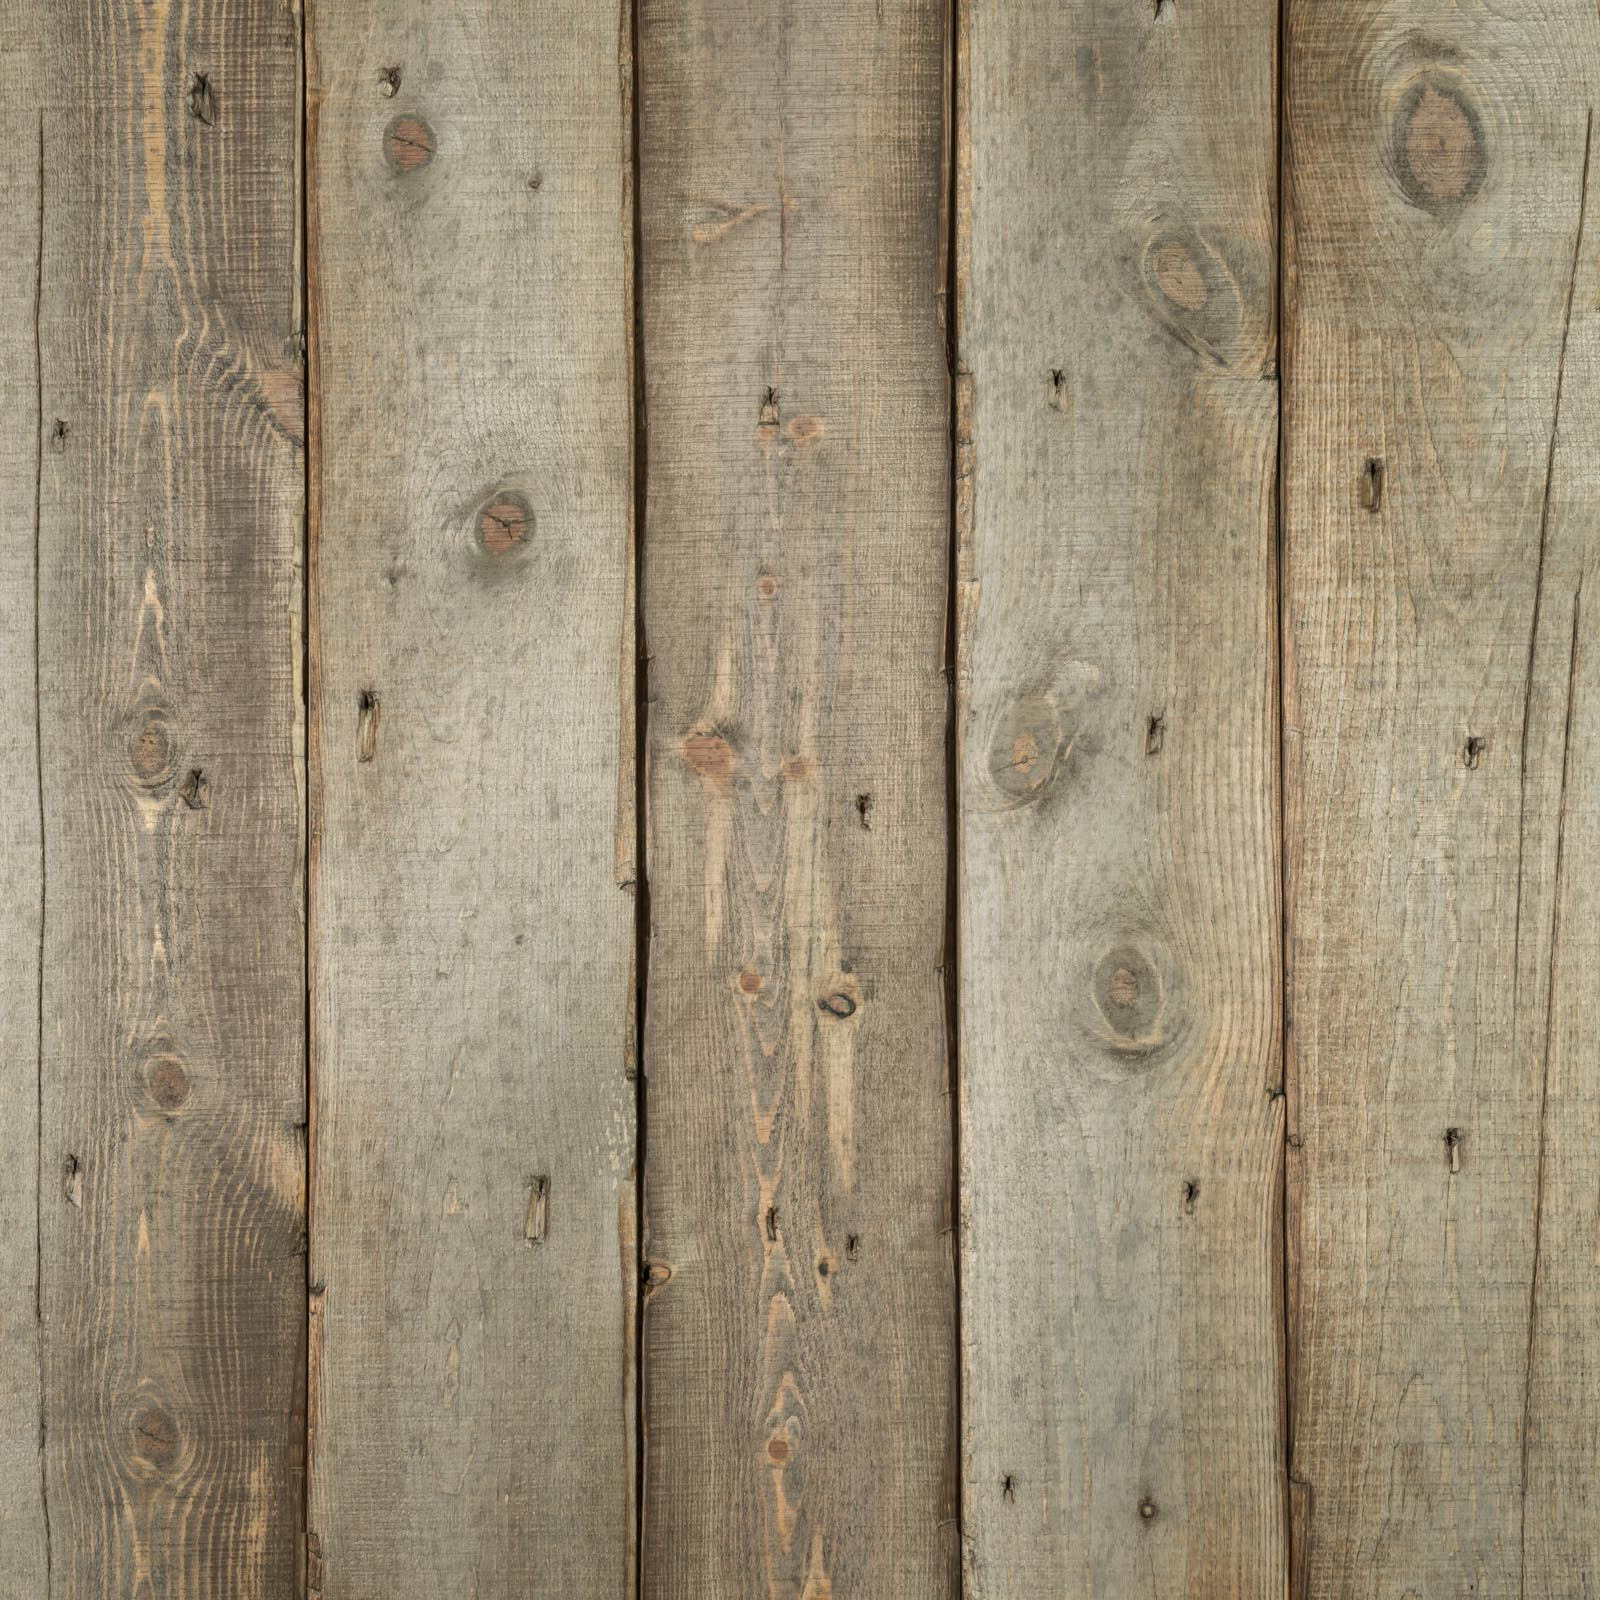 Rustic Reclaimed <br>Distressed